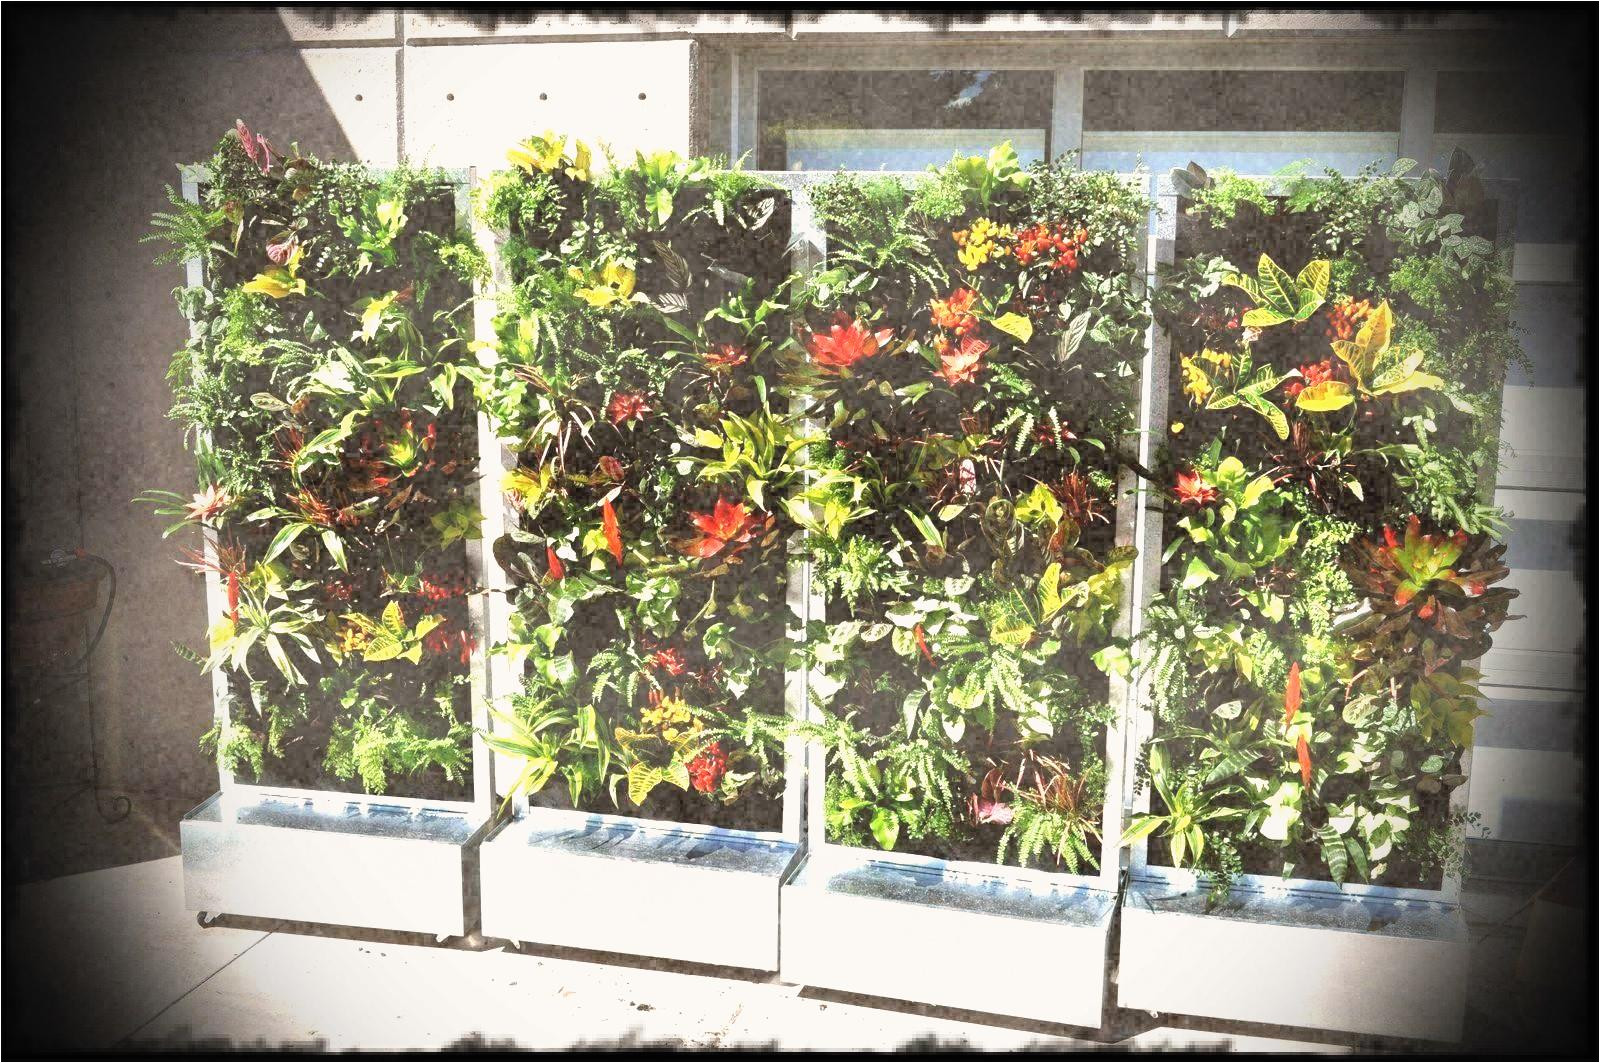 vertical wall garden kits plants on walls systems modular kit with pots irrigation included indoor vegetable archives home gardens park s wheels o 2